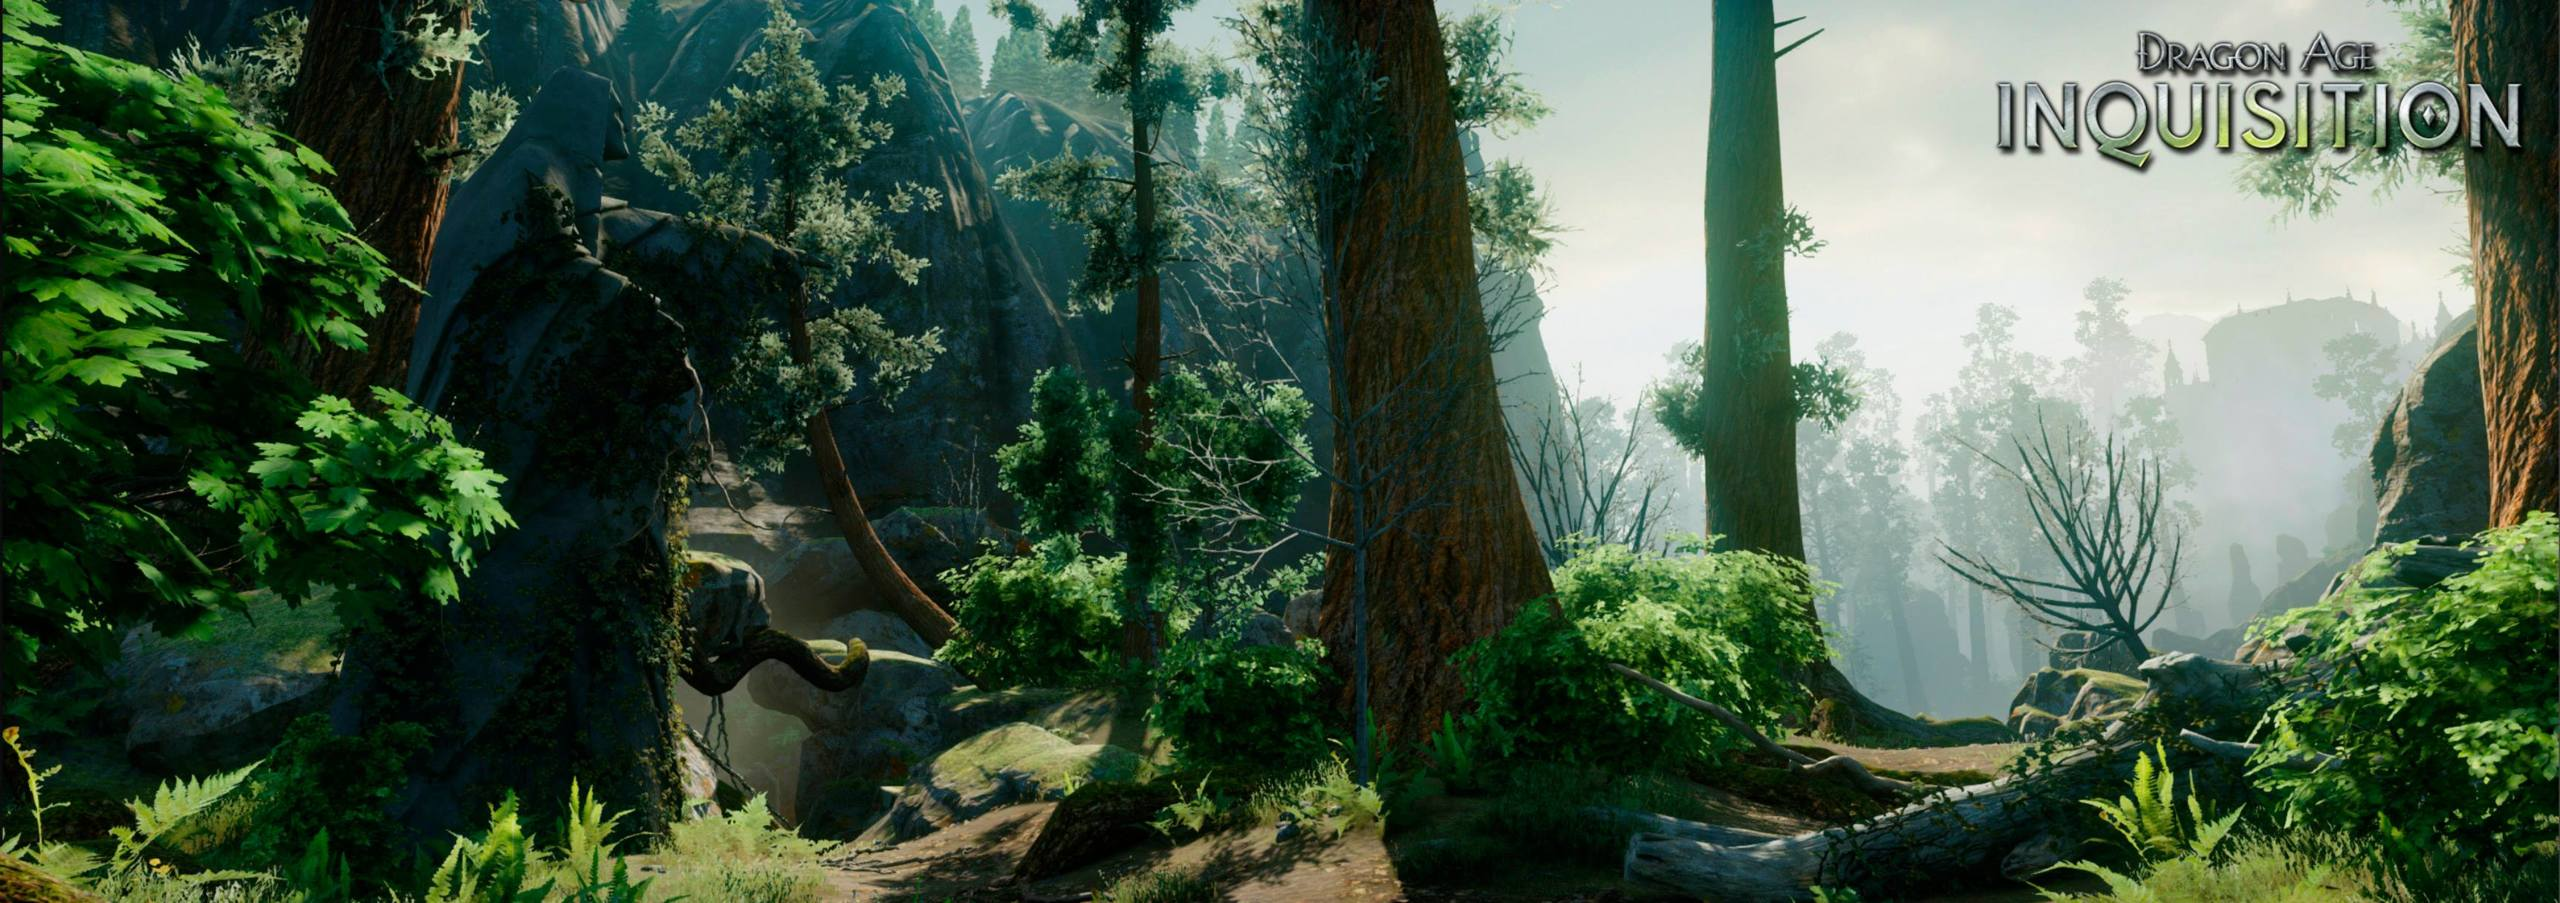 Foto de Dragon Age: Inquisition (8/11)